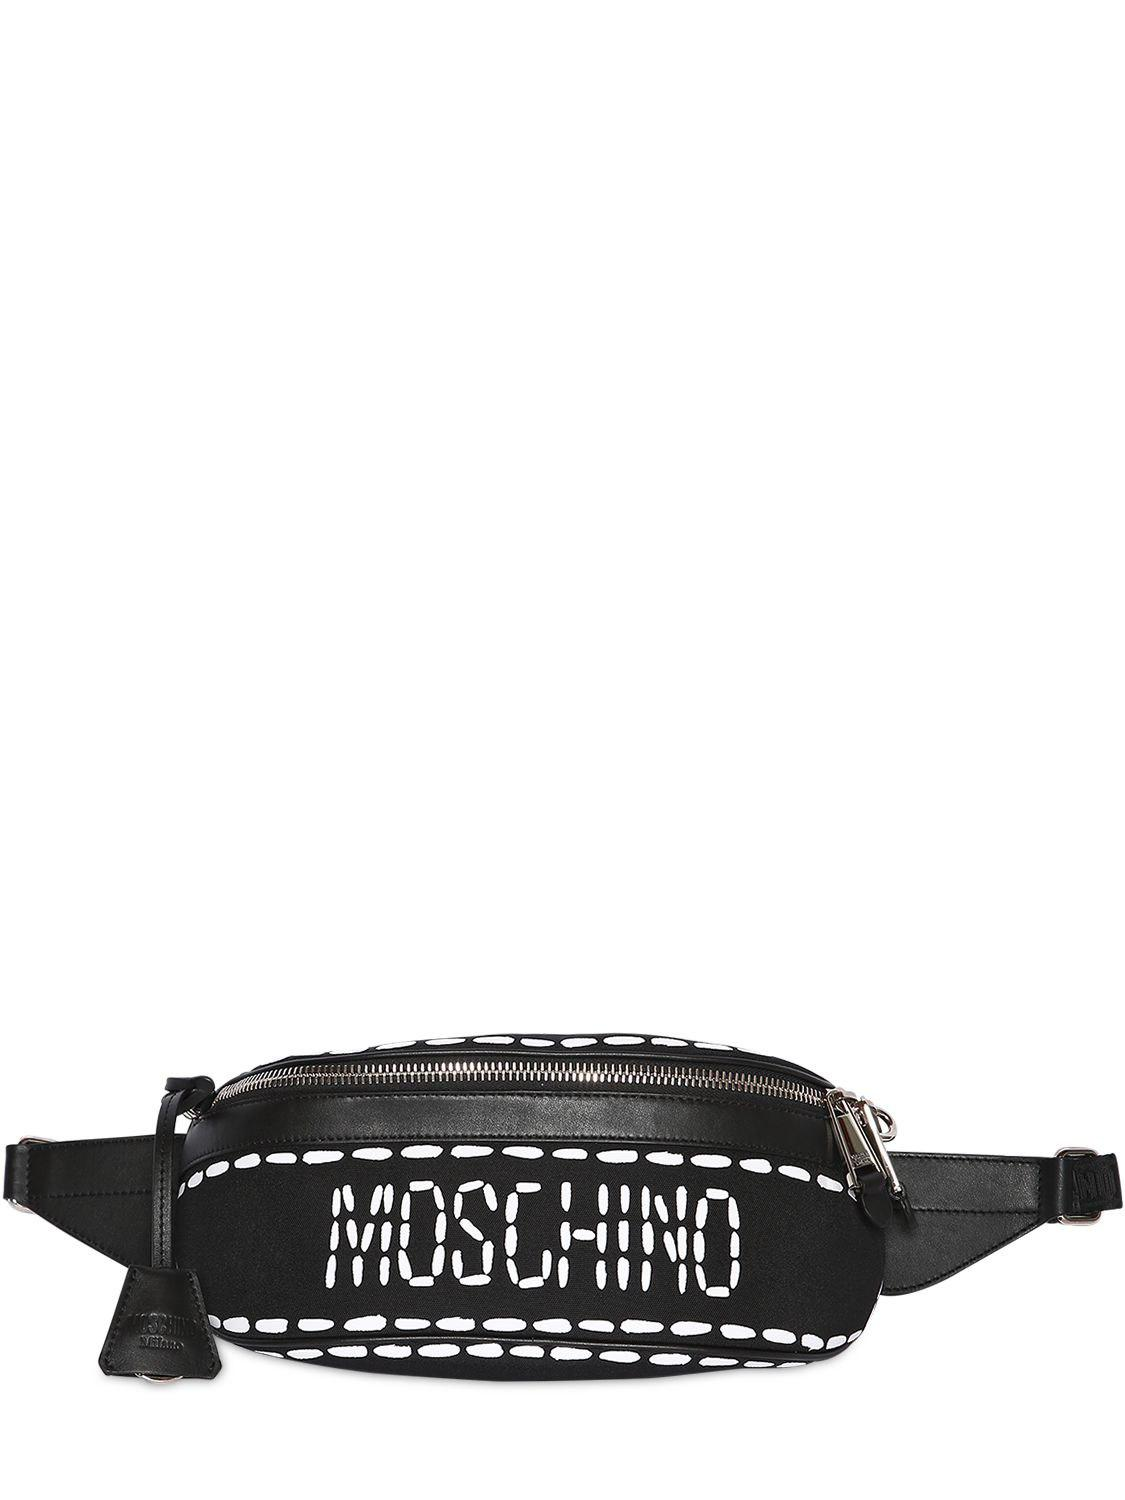 ce92a1d7b8 Moschino Stitched Logo Nylon Belt Bag in Black for Men - Lyst